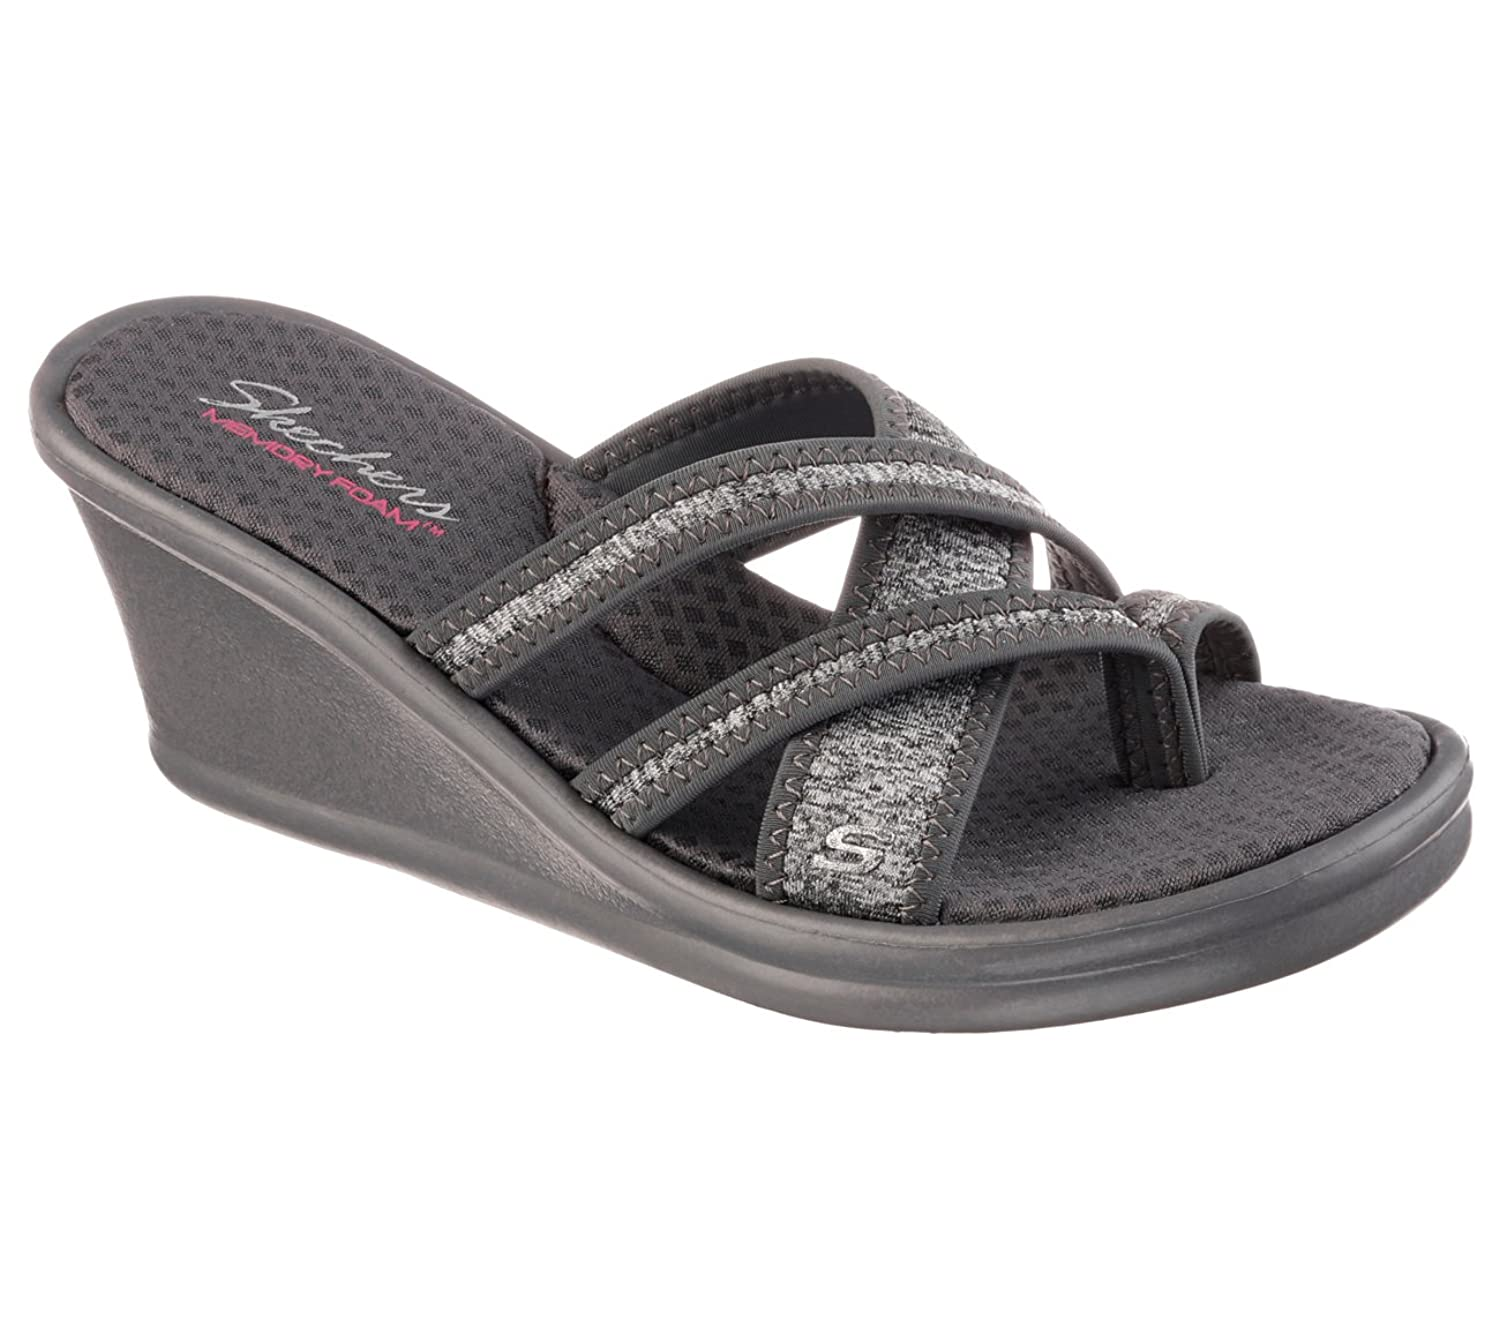 Skechers Cali Rumblers Skechers Women's Rumblers Pen